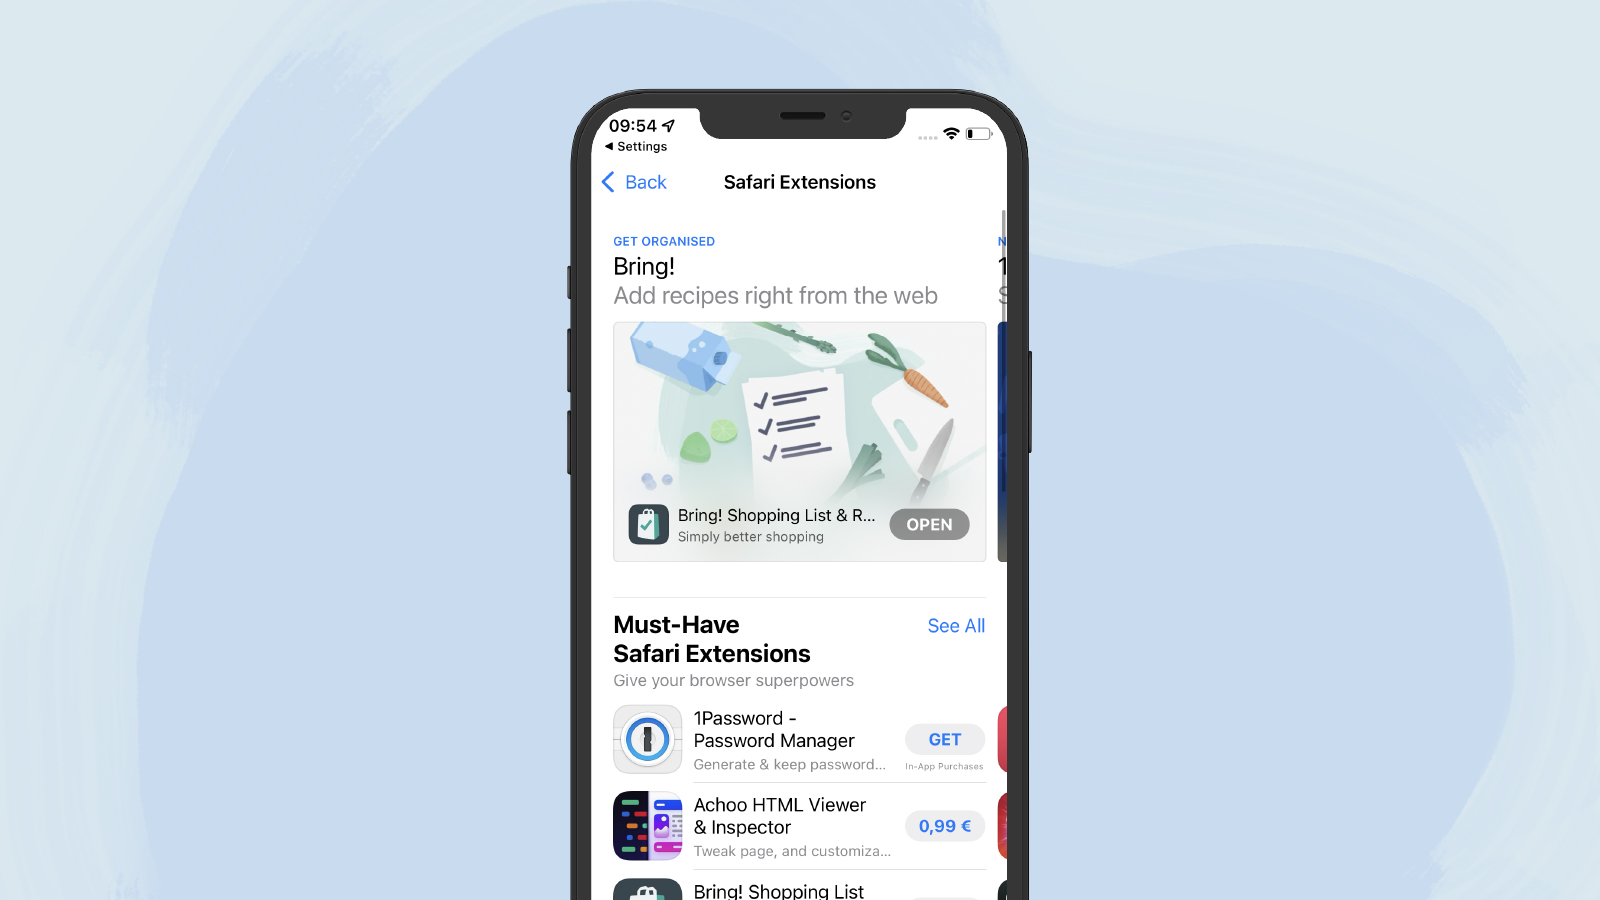 The Bring!Safari browser extension is now available in the App Store